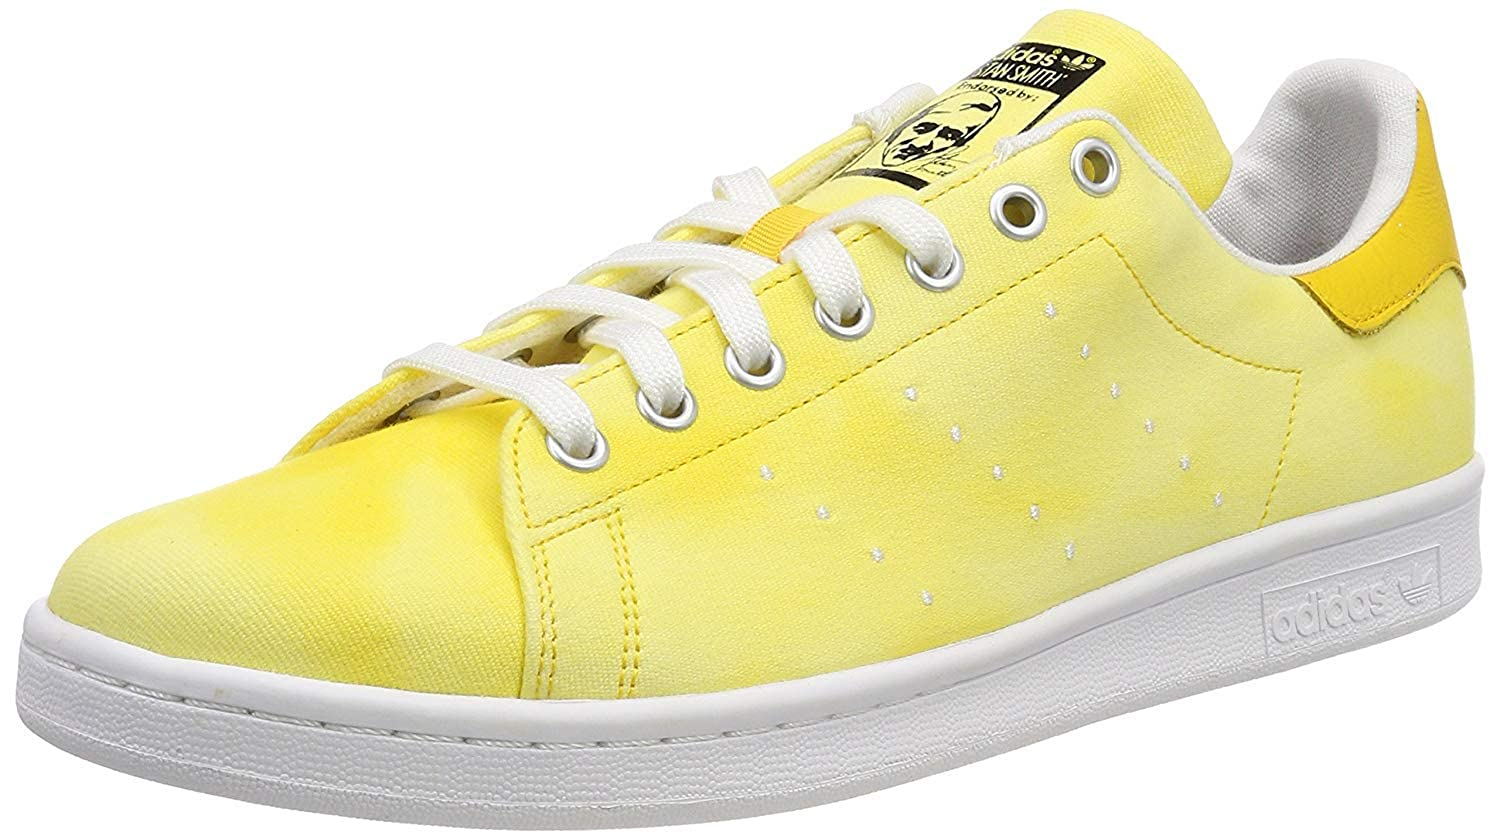 the best attitude 563e6 9297d Amazon.com | adidas Originals Men's Pharrell Williams PW HU ...